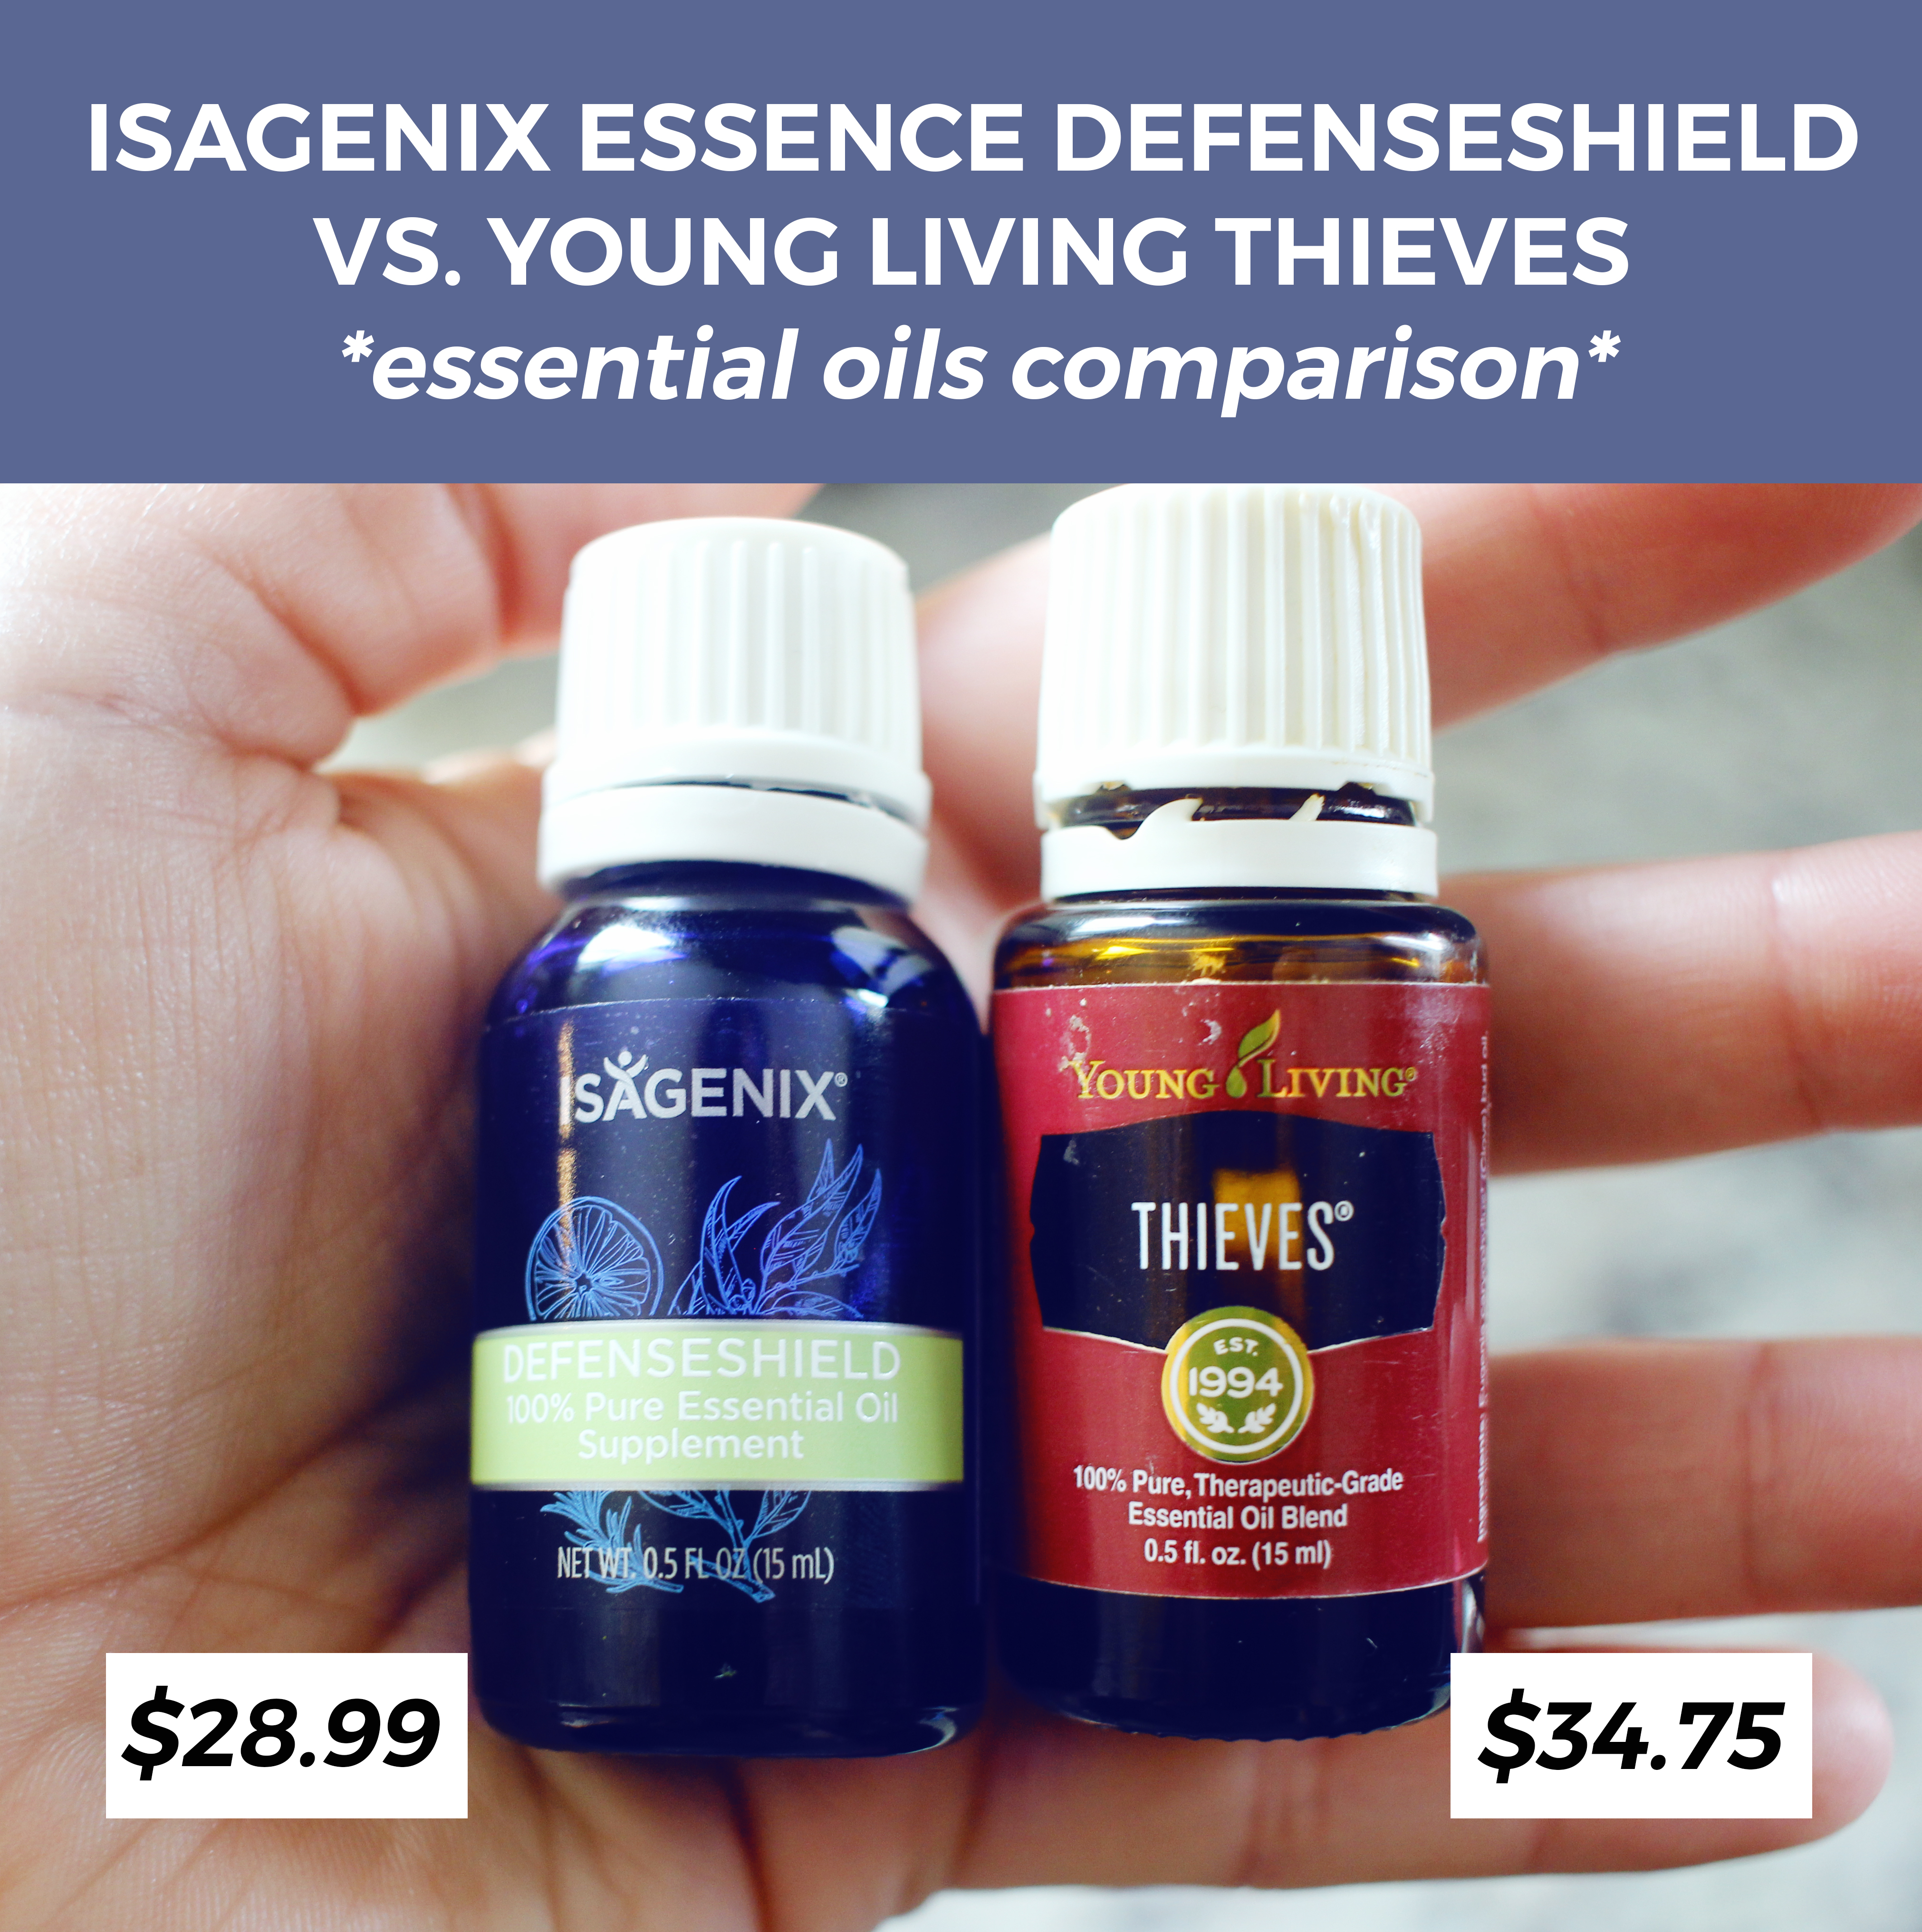 Isagenix Essence DefenseShield Vs. Young Living Thieves essential oil comparison: Isagenix Essence Essential Oil Review & Dupes